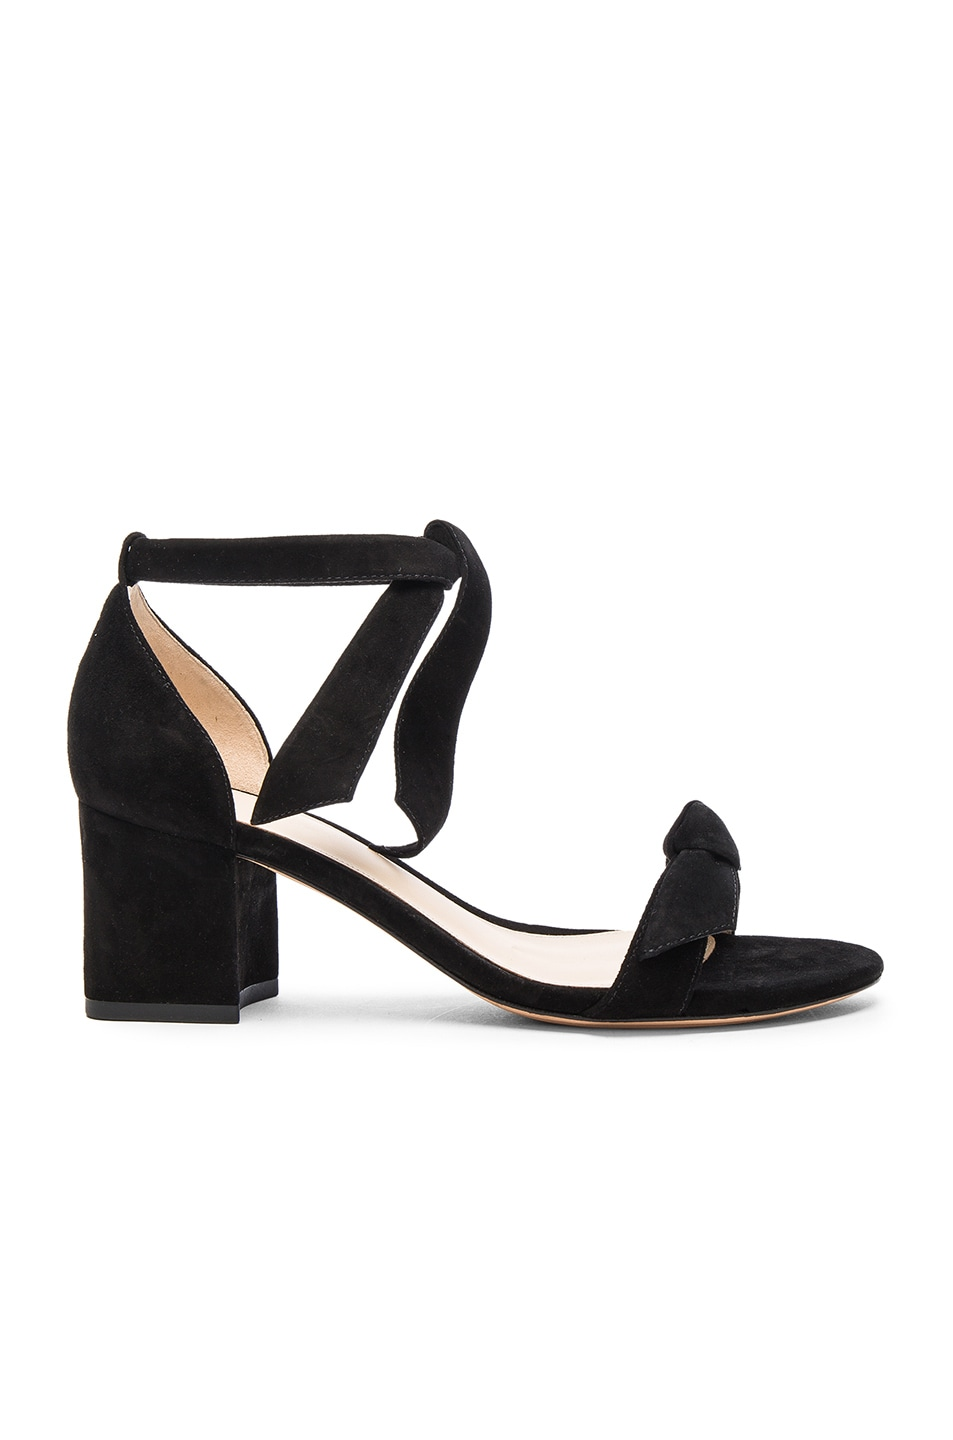 Image 1 of Alexandre Birman Suede Clarita Sandals in Black